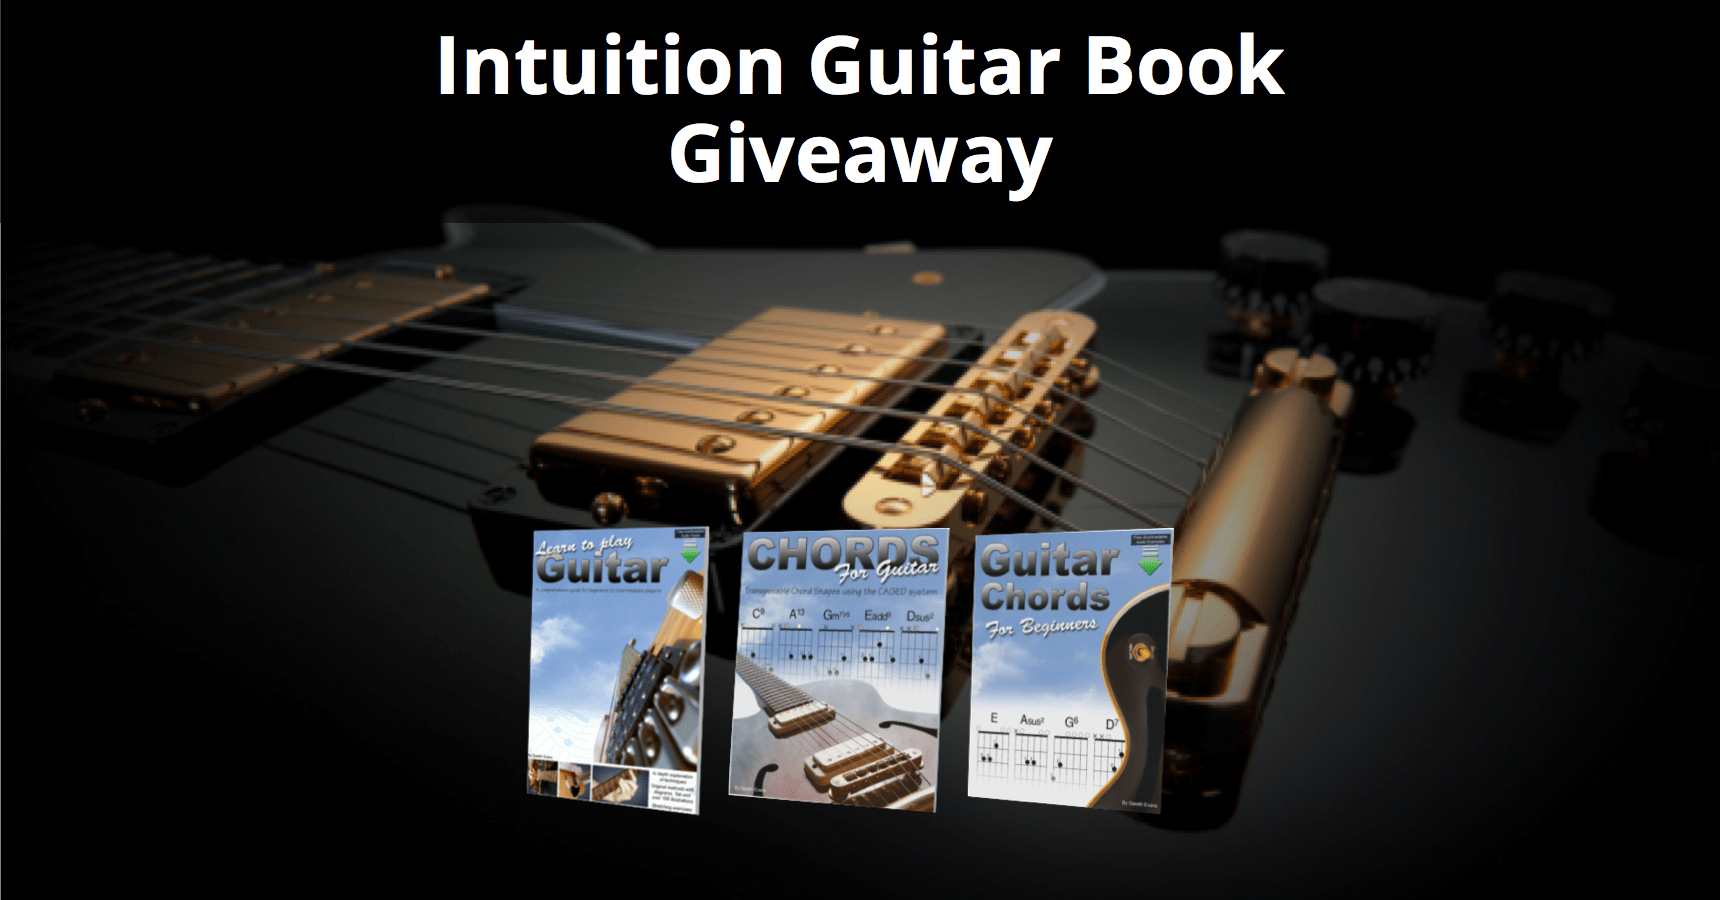 Intuition Guitar Book Giveaway 3 Chances To Win 2 Free Books Per